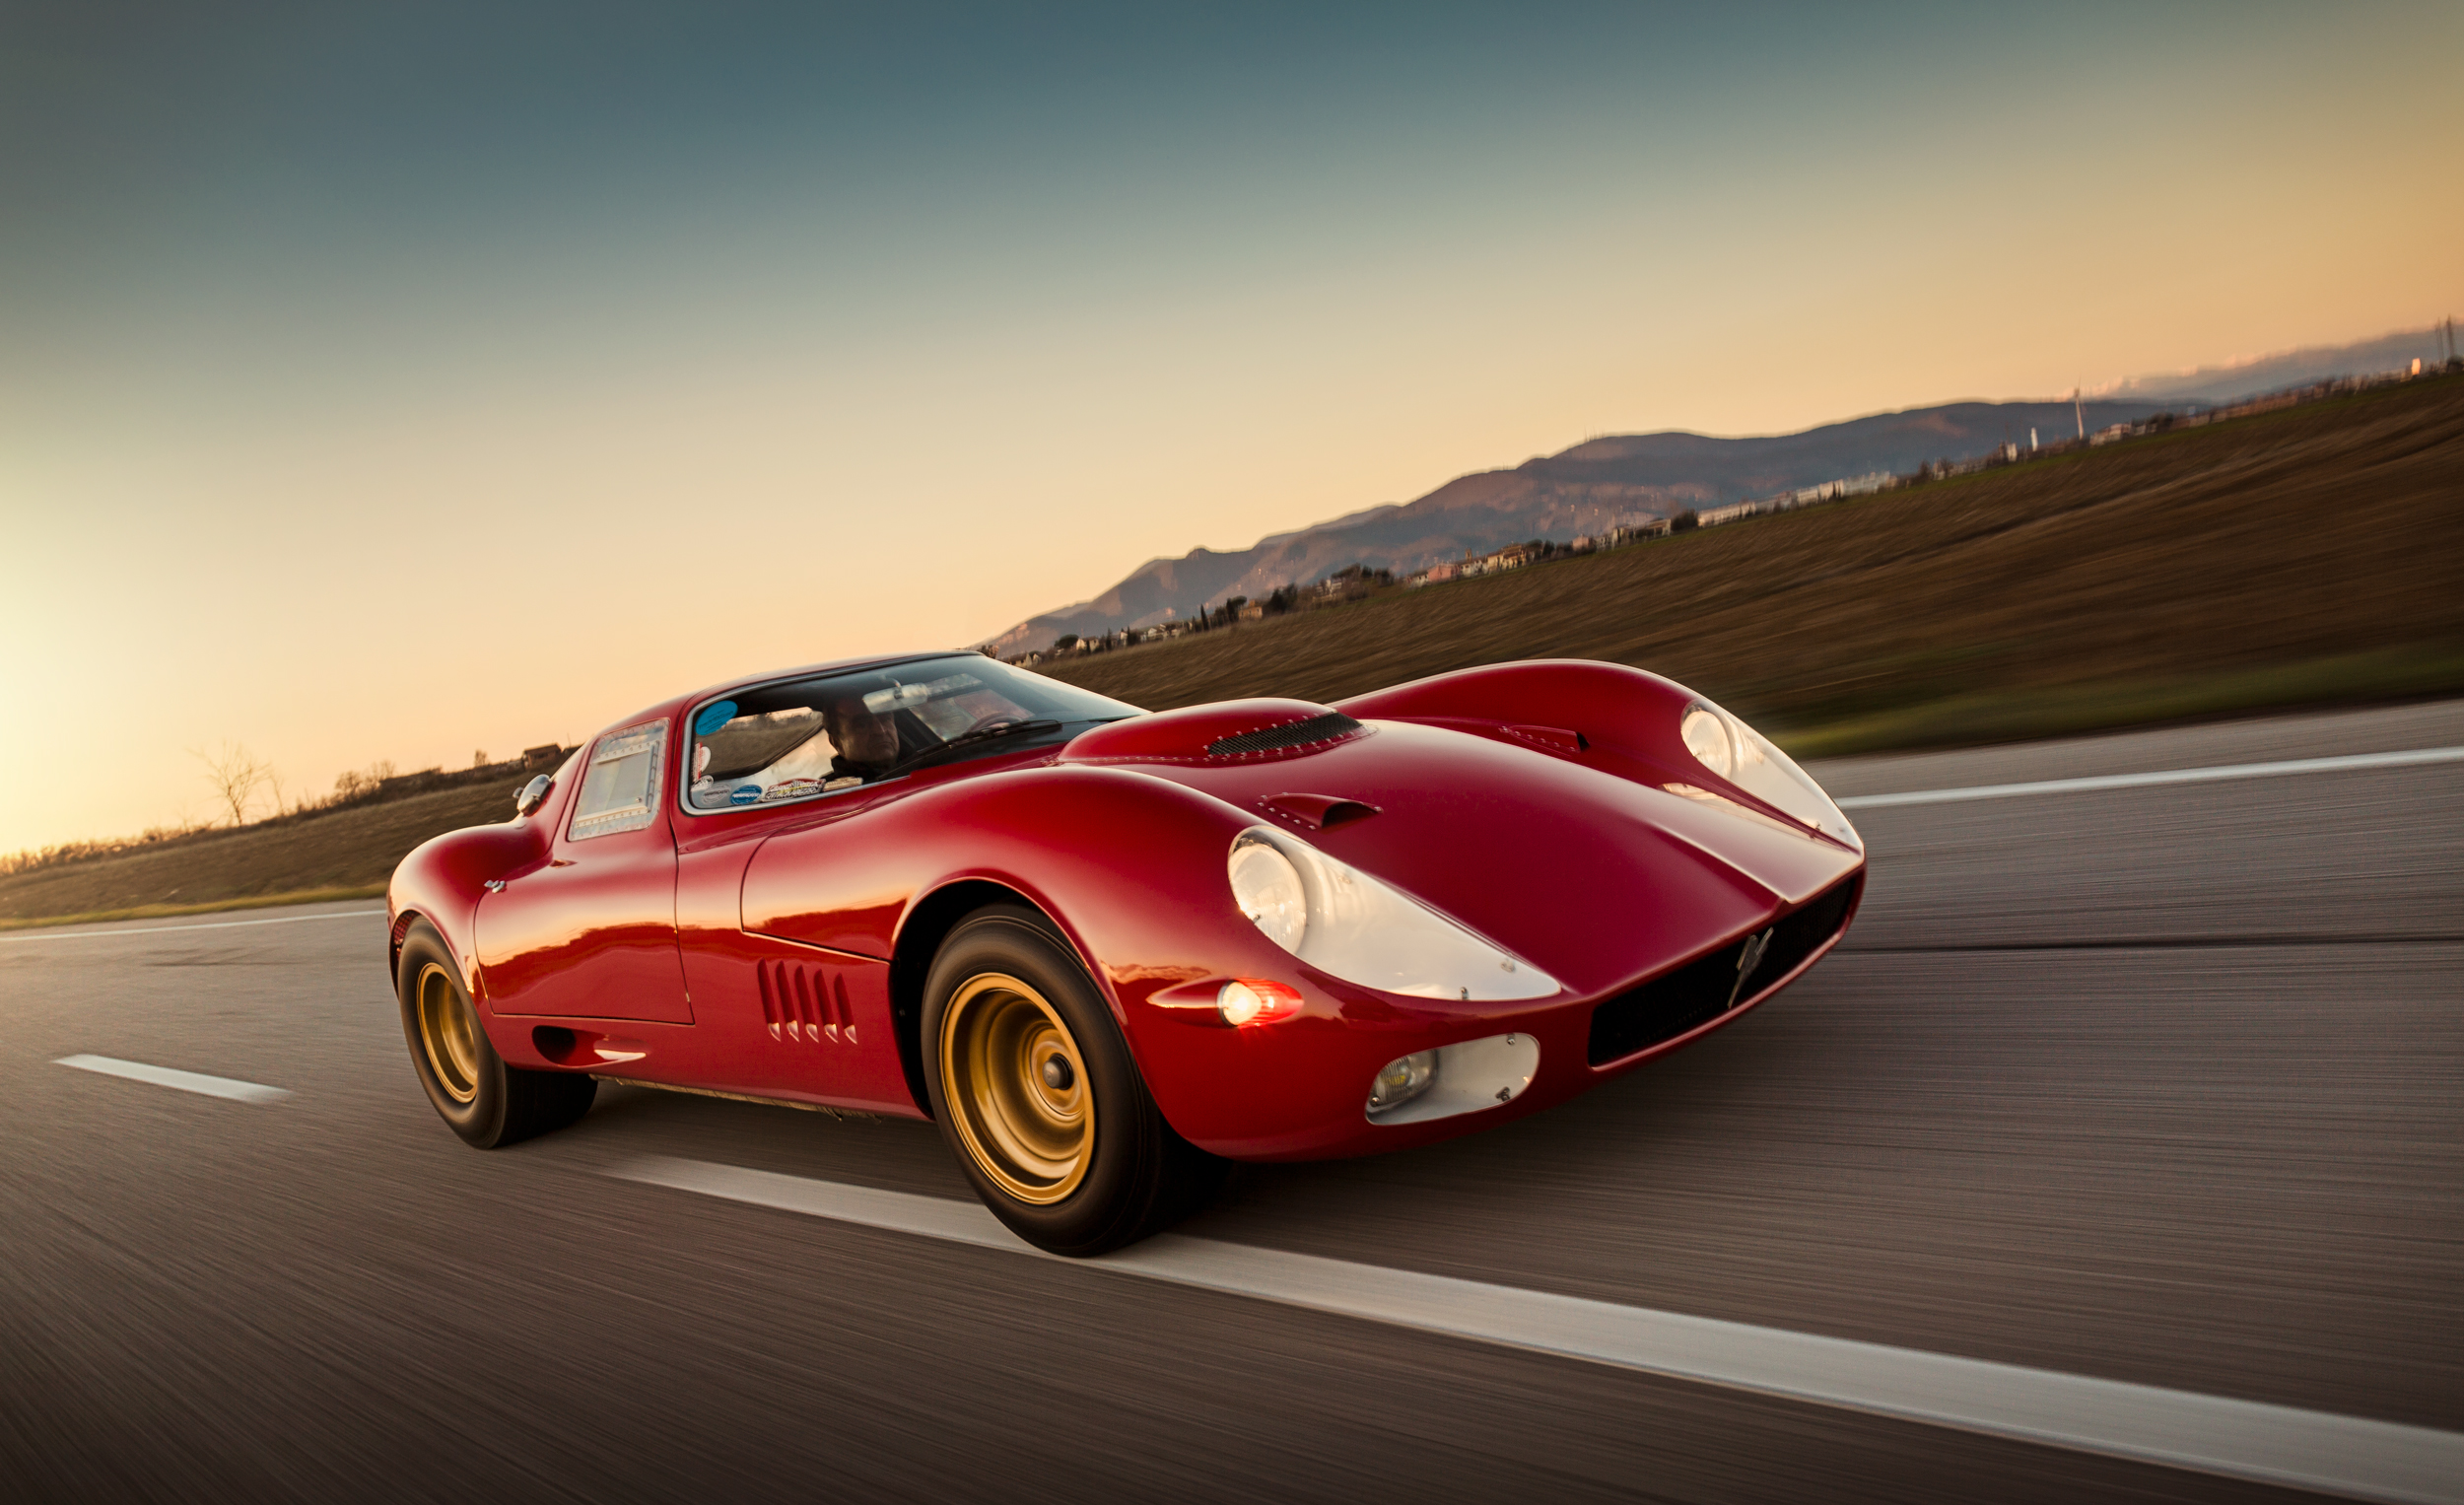 Meet the Marciano 268A, the missing link between the Alfa Romeo TZ2 and 33 Stradale